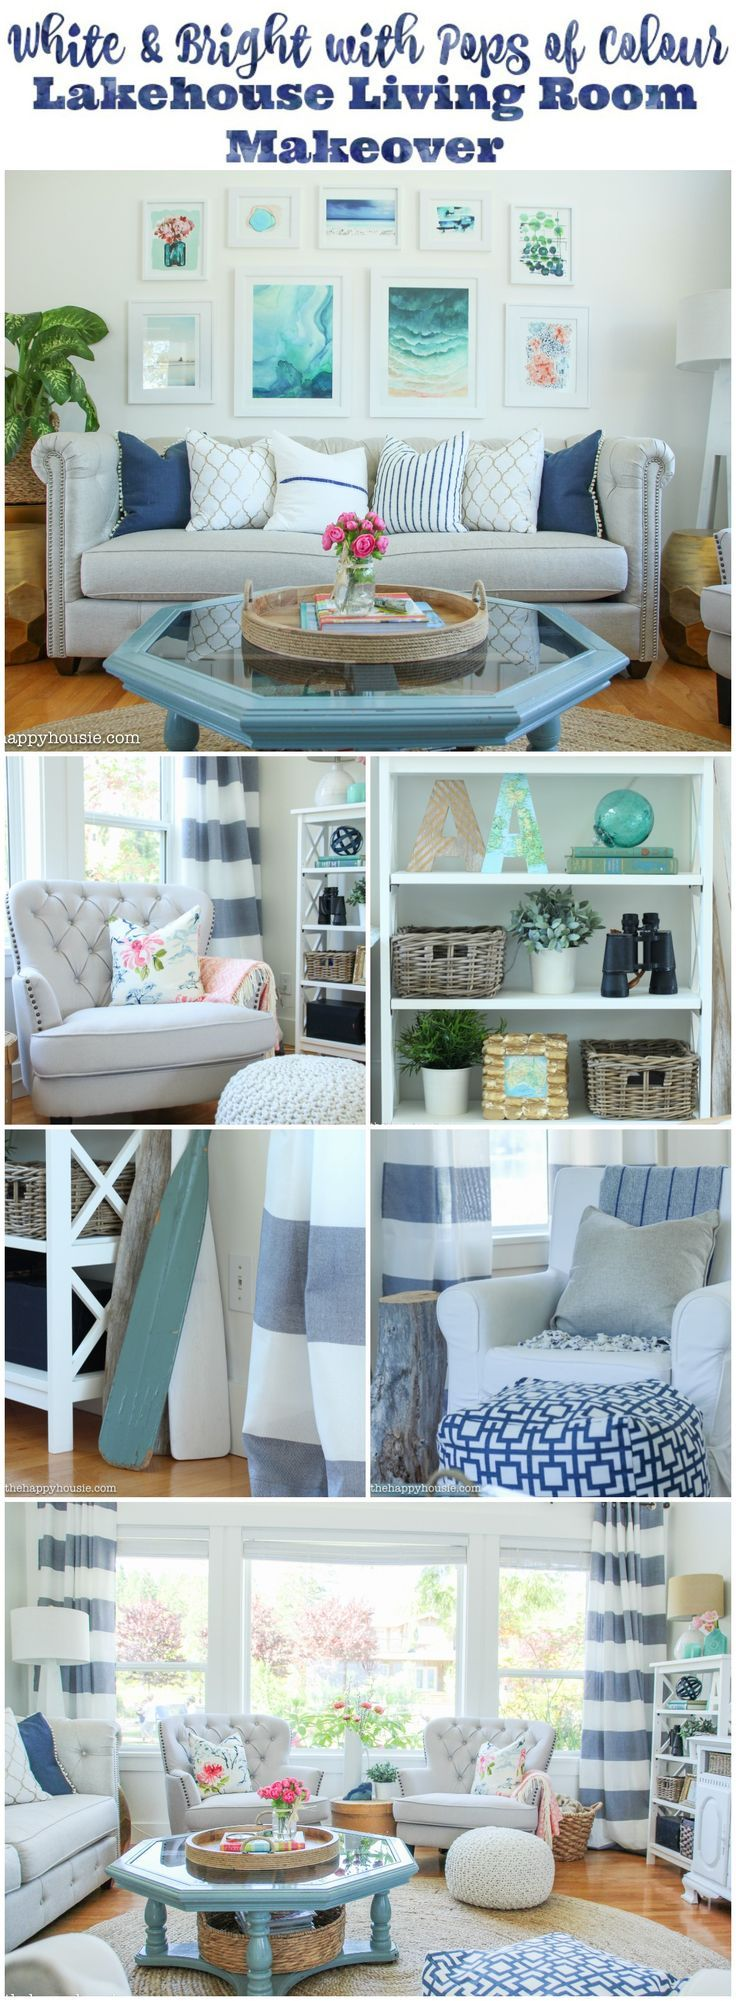 Lake house living room decor - Come And Tour This White And Bright With Pops Of Colour Lake House Living Room Makeover